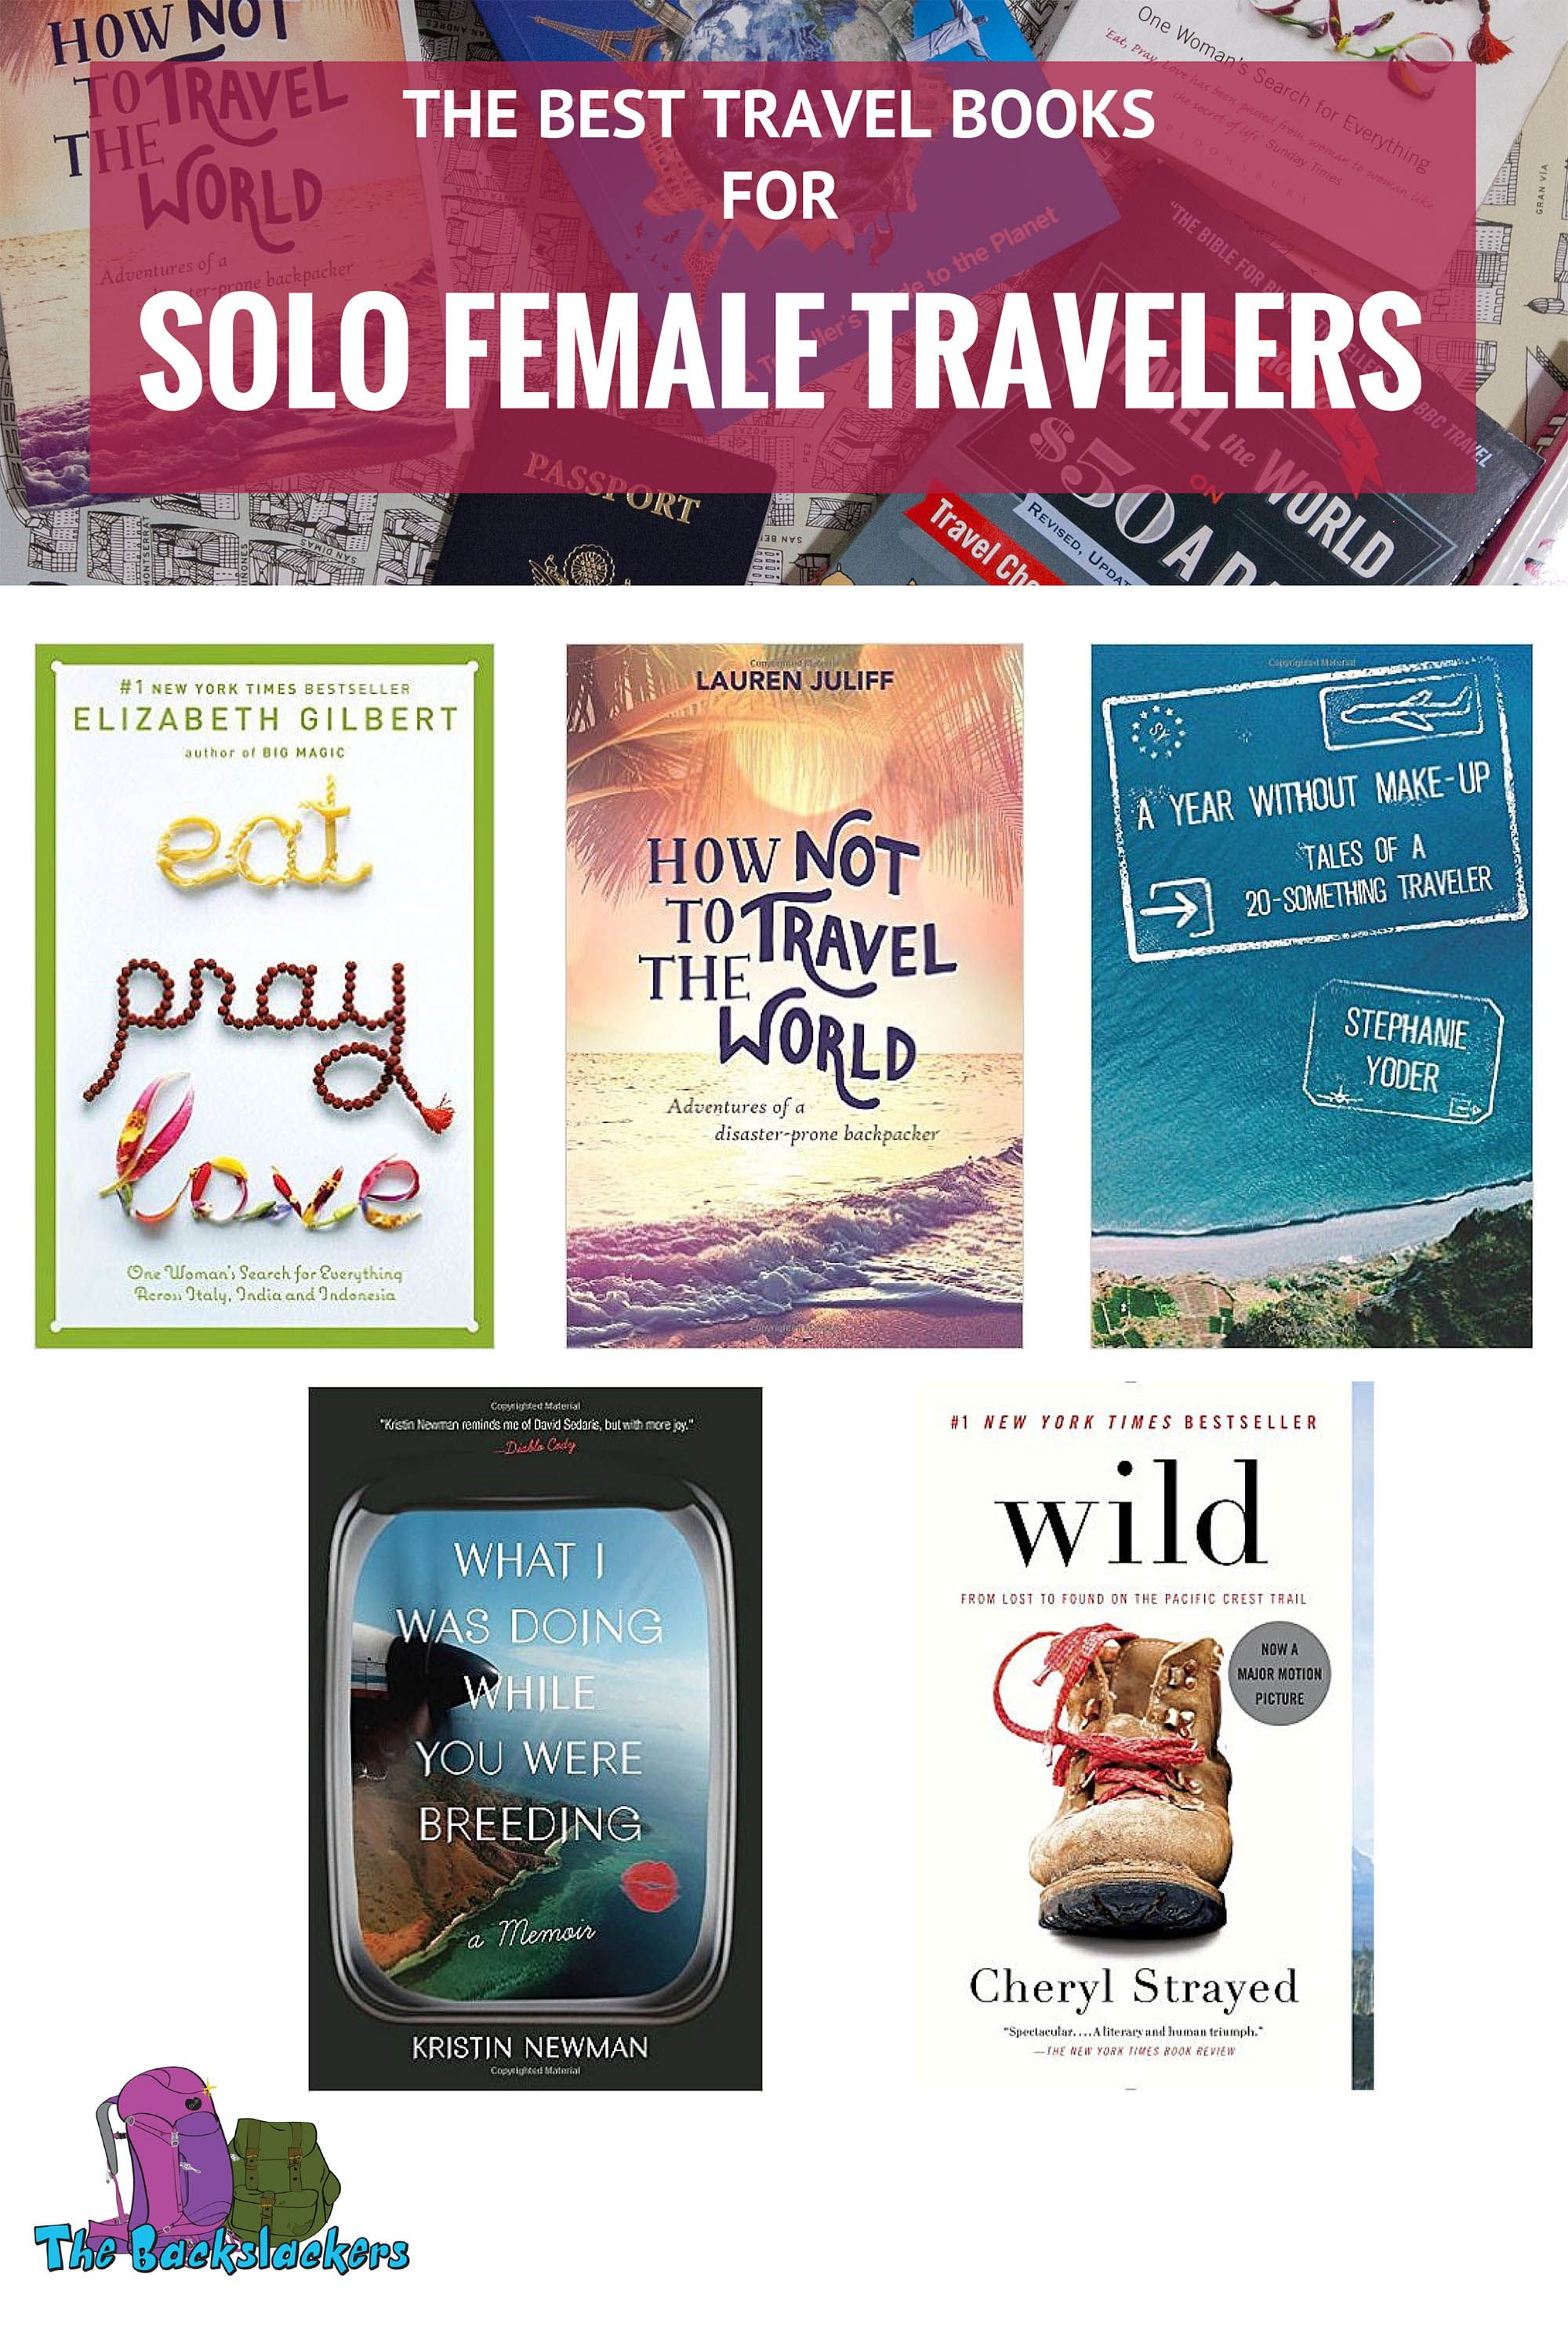 Best Travel Books for Solo Female Travelers - Featuring Eat, Pray Love; How  Not To Travel The World; A Year Without Makeup; What I was Doing While You  Were ...